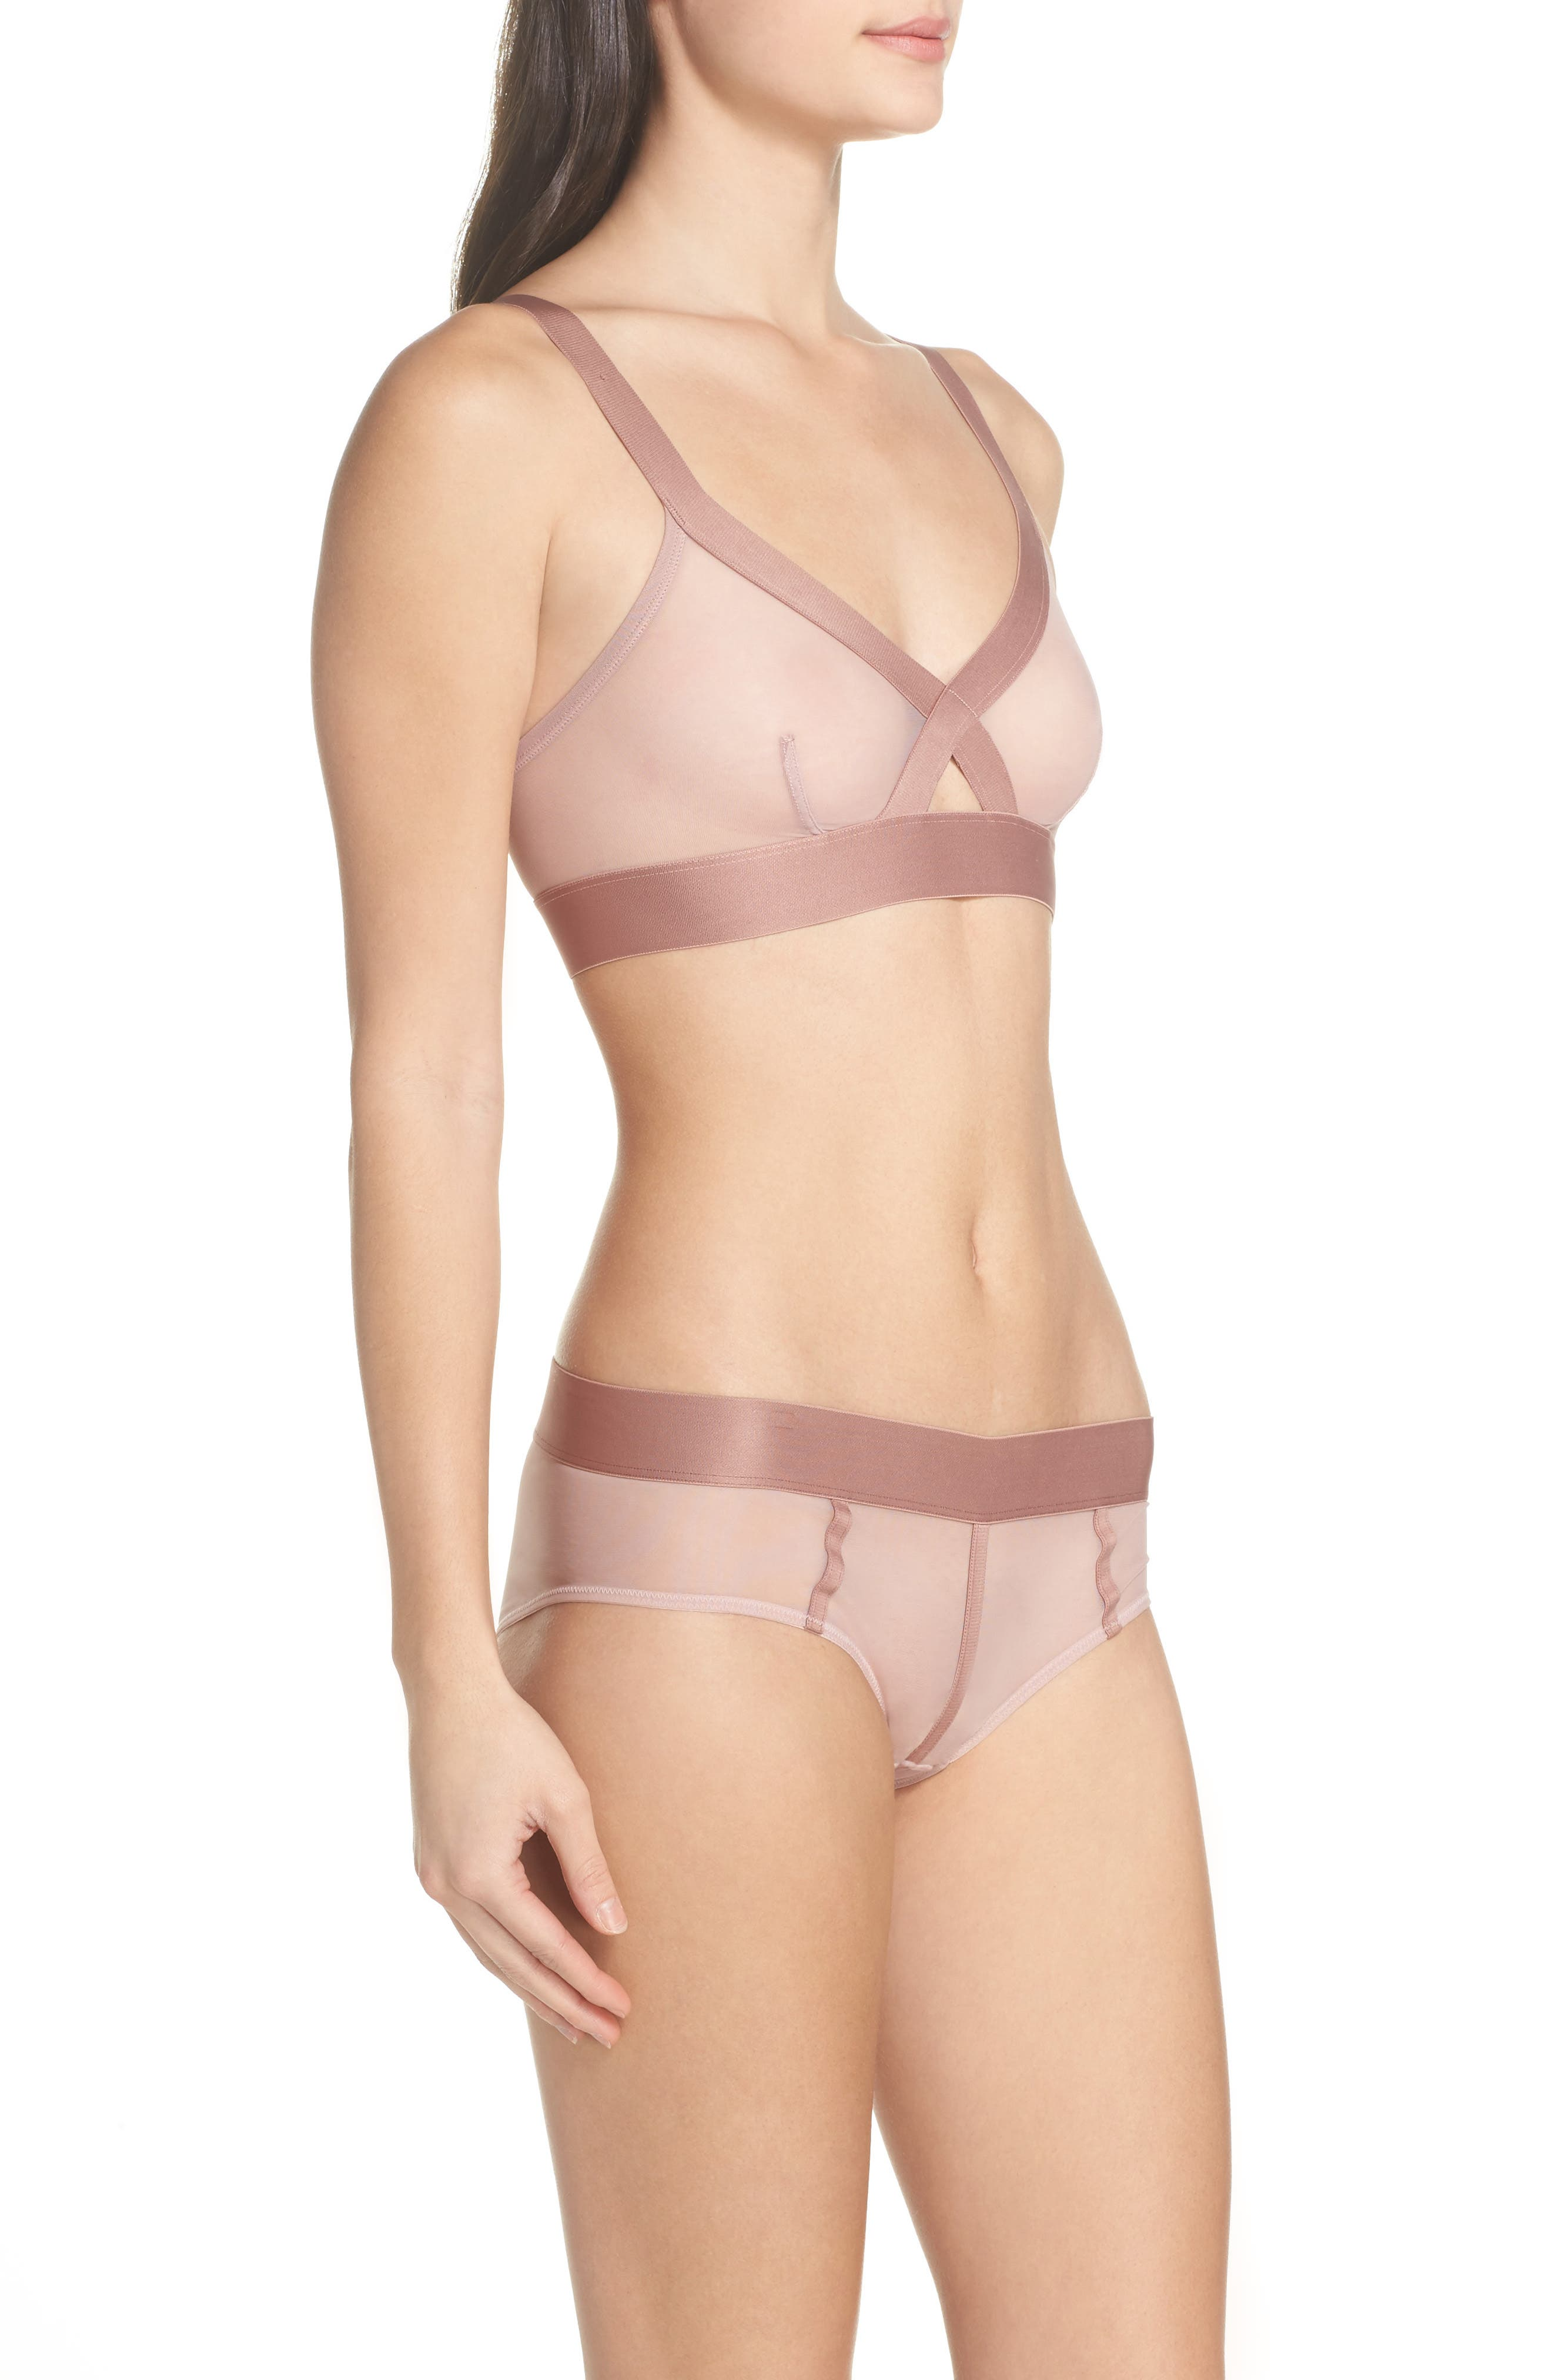 Sheers Wireless Bralette,                             Alternate thumbnail 8, color,                             Shell/Rouge